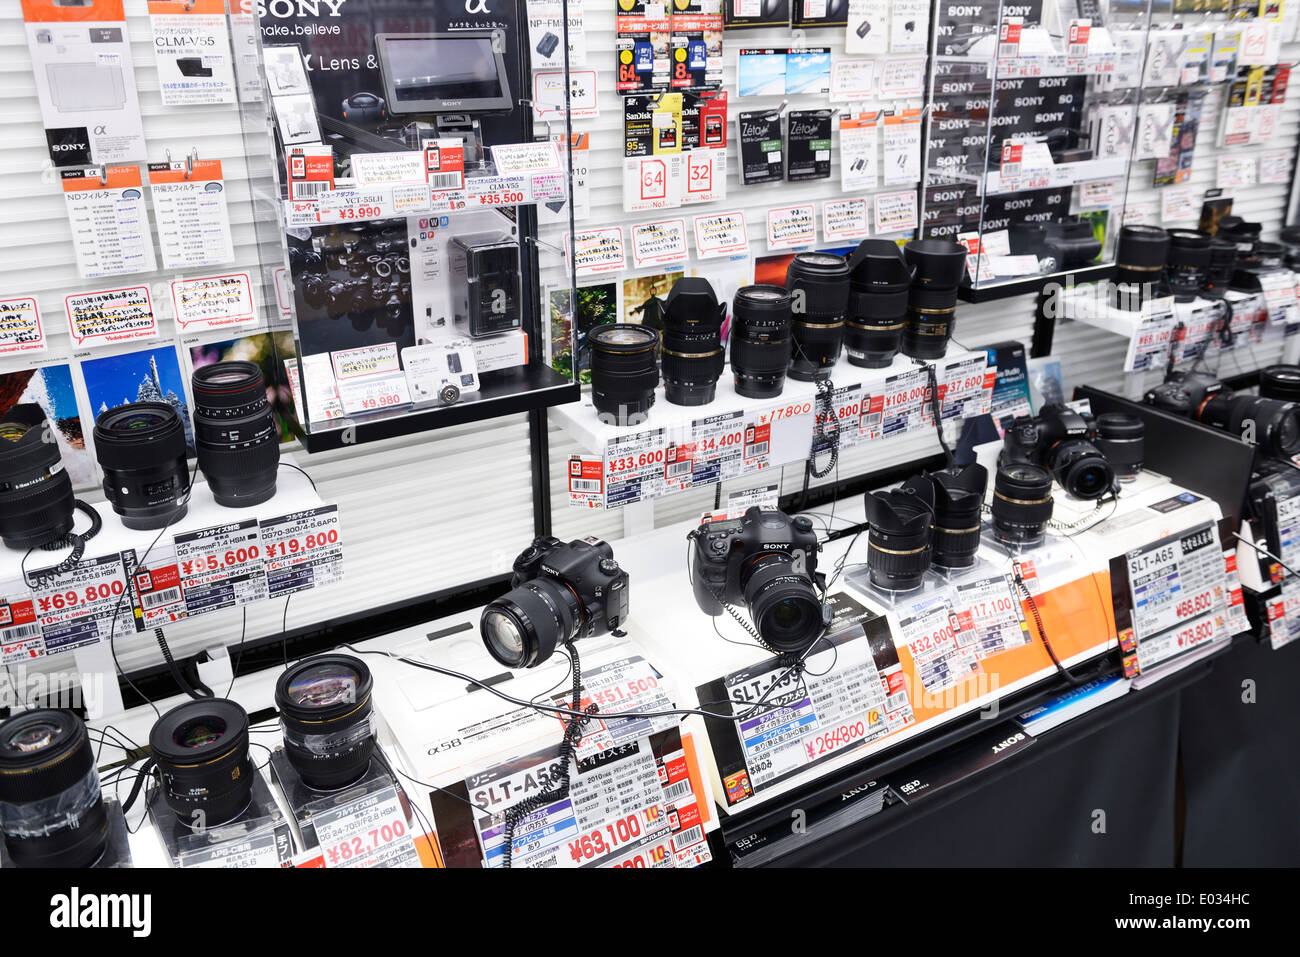 Sony cameras and lenses on display in electronics store Yodobashi Camera, Yodobashi-Akiba in Akihabara, Tokyo, Japan. - Stock Image